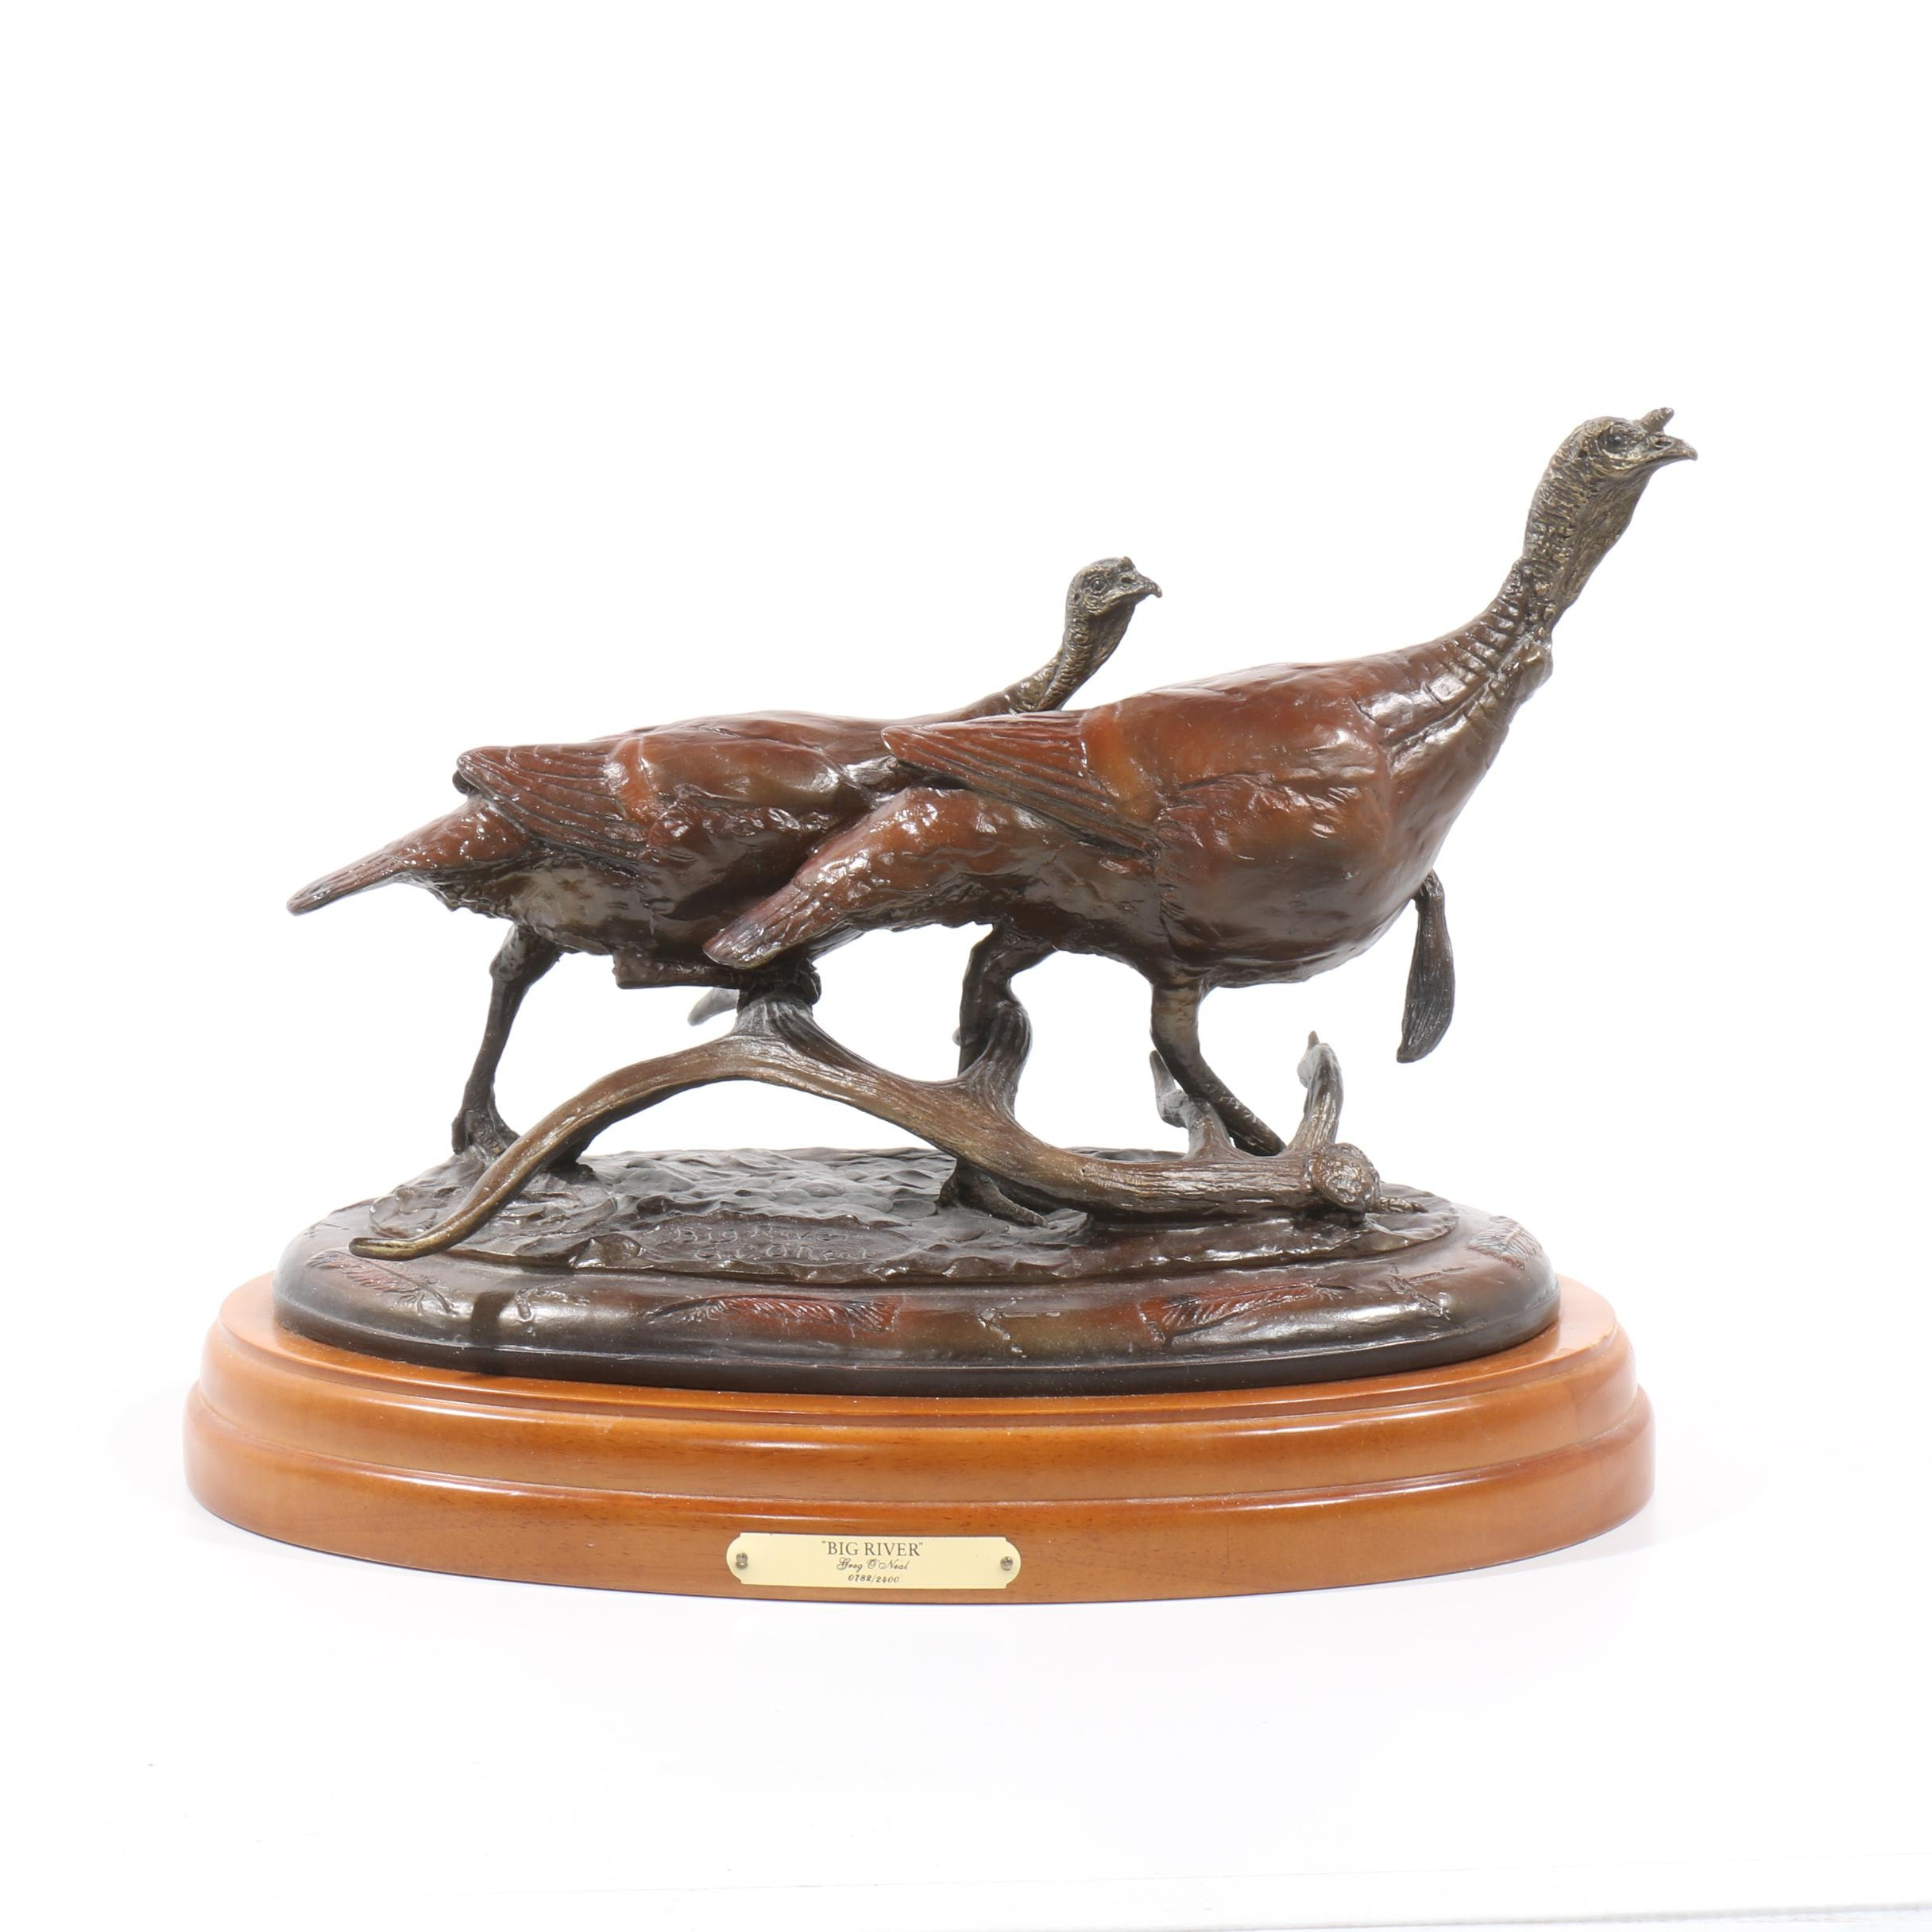 "Greg O'Neal Bronze Sculpture ""Big River"""